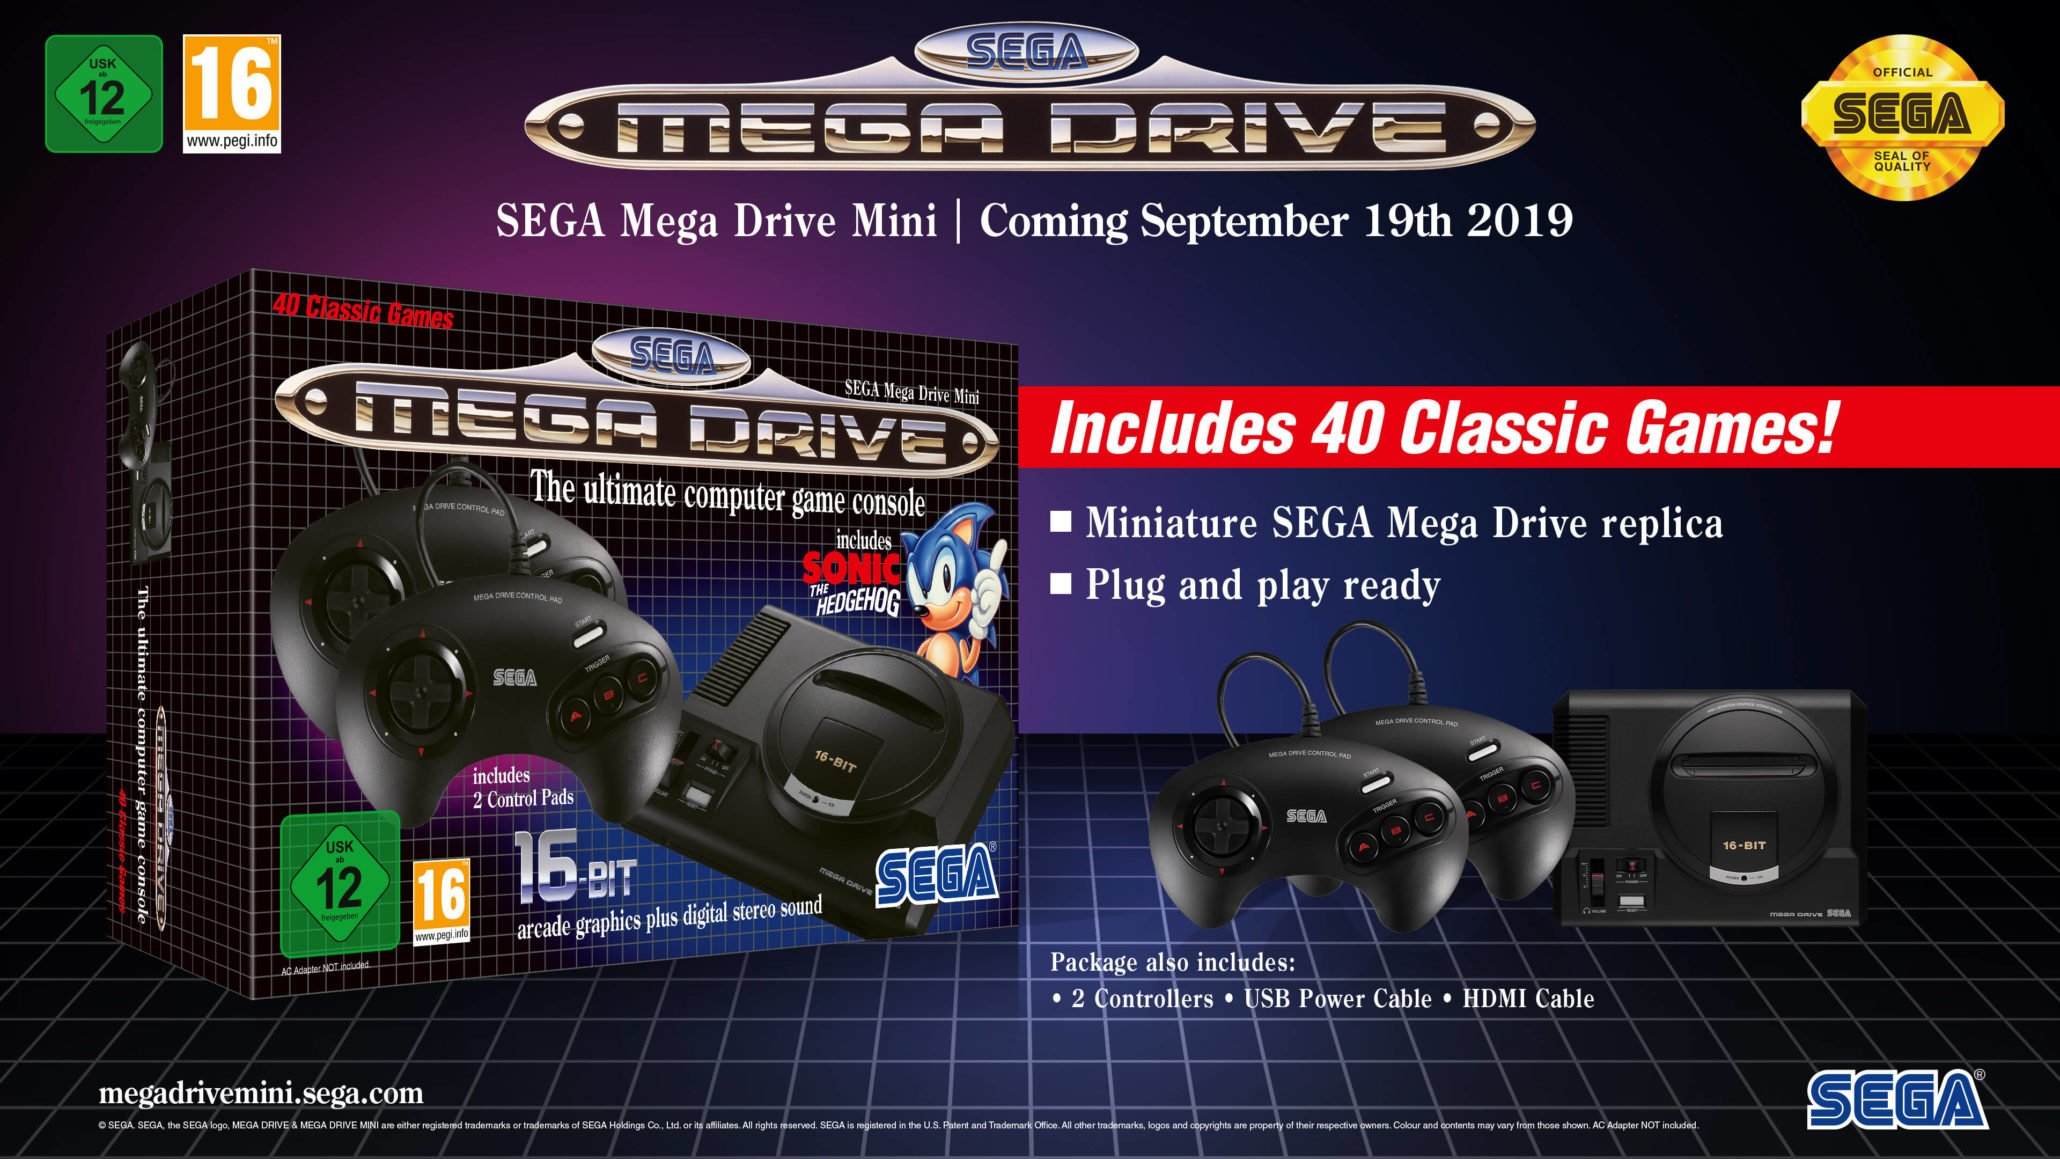 There are 40 classic titles to enjoy in the Sega Genesis Mini.